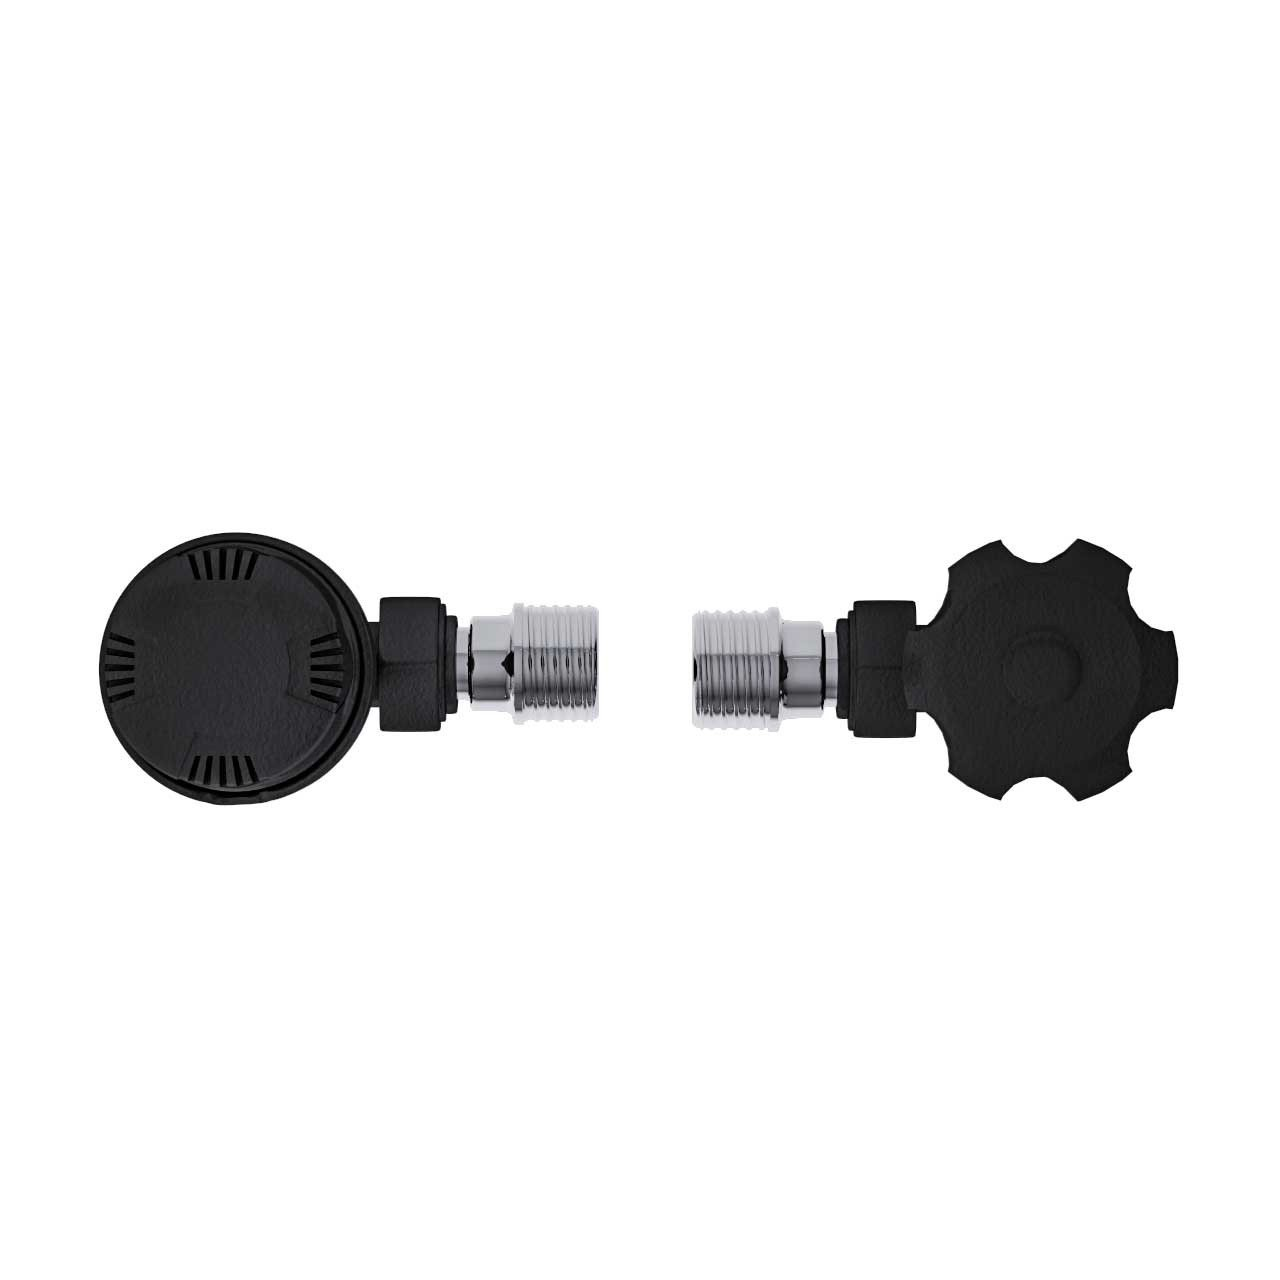 Anthracite Thermostatic Angled Radiator Valves